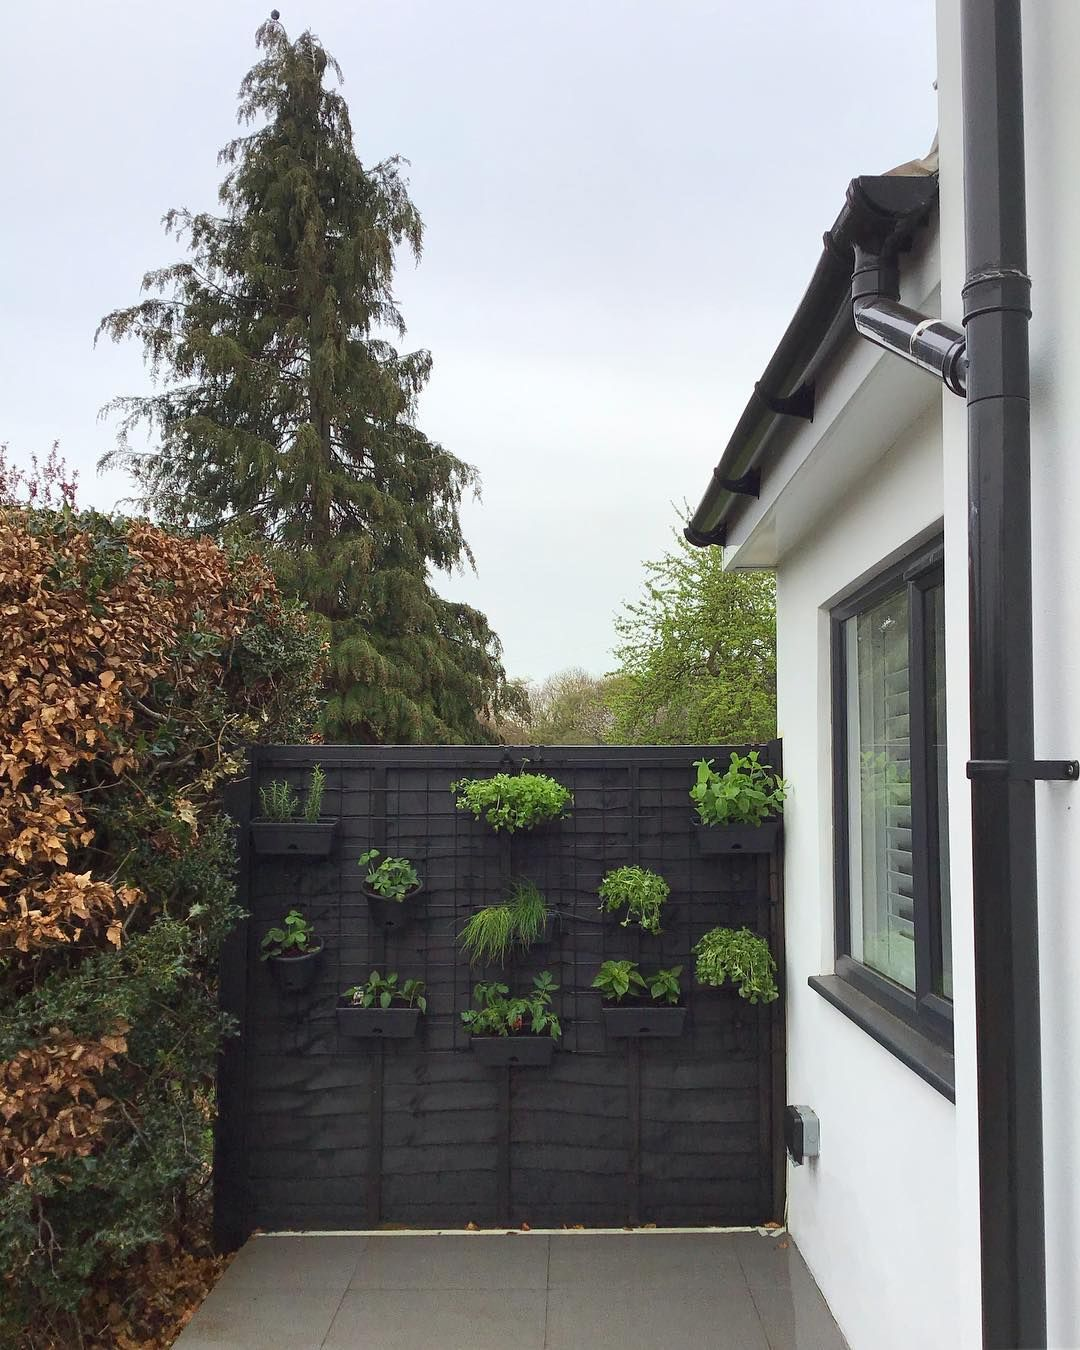 Homebase Garden Wall With Herbs Etc For Side Fence Garden Wall Bungalow Renovation Outdoor Decor